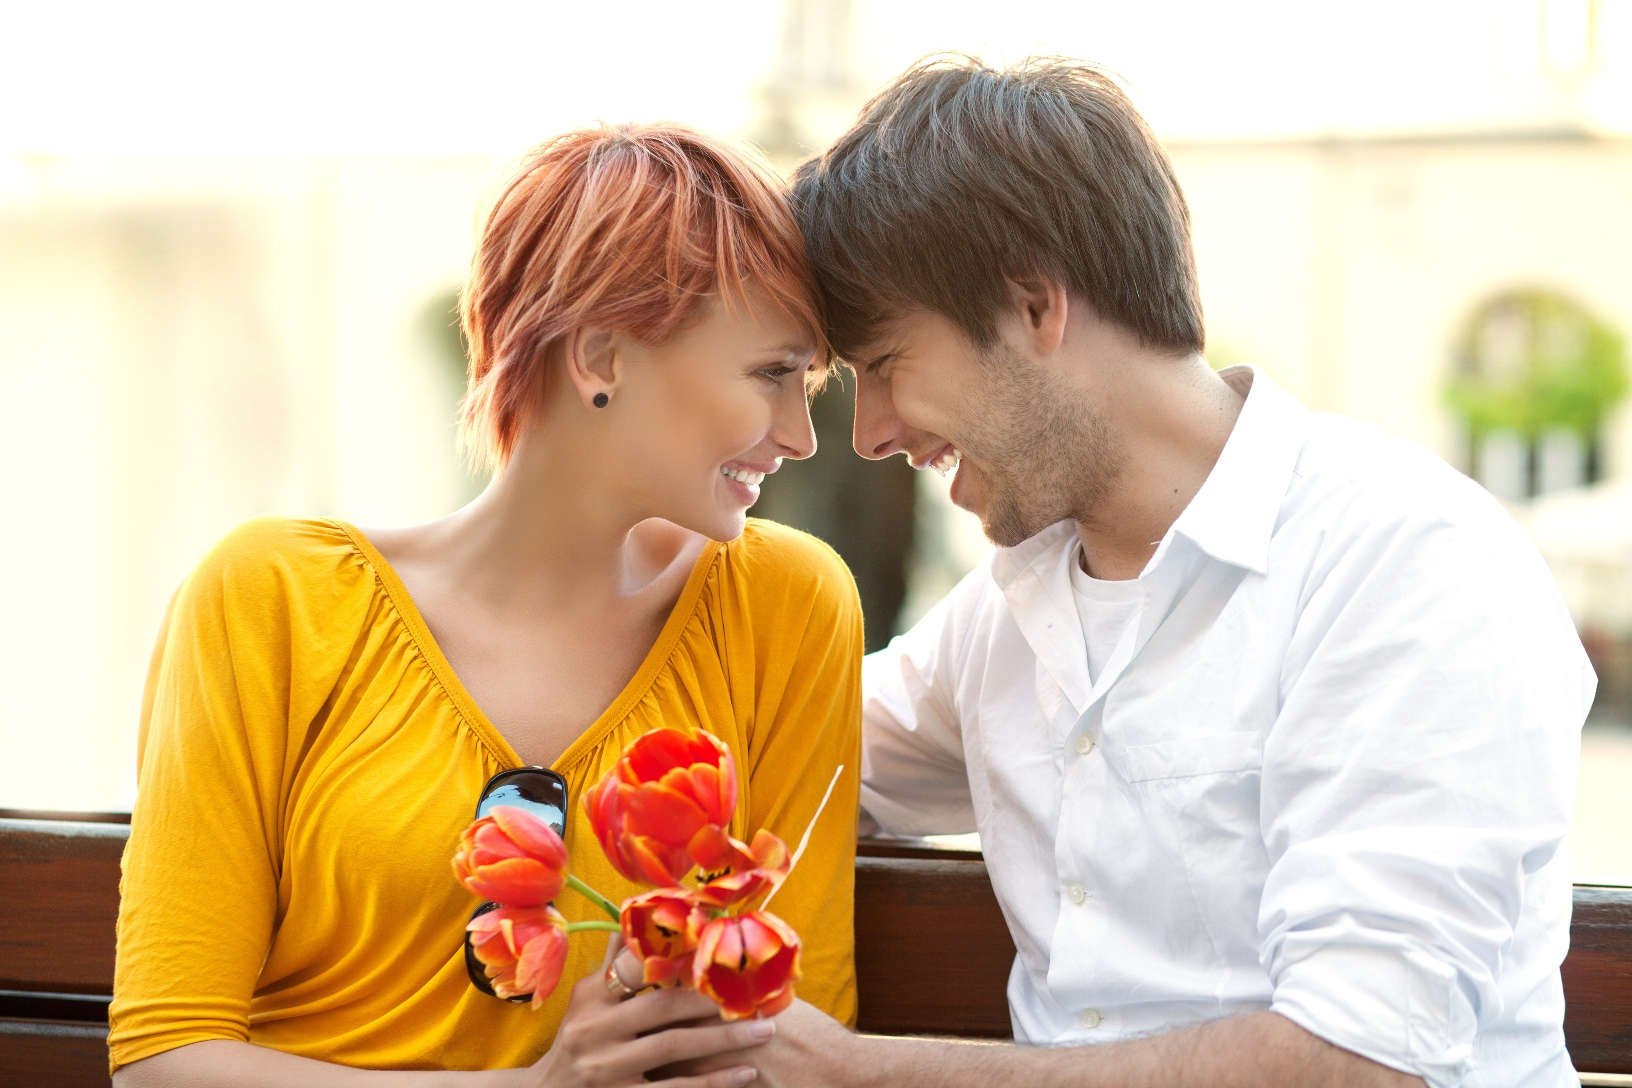 10 Signs a Guy Is Flirting with You - Part 6